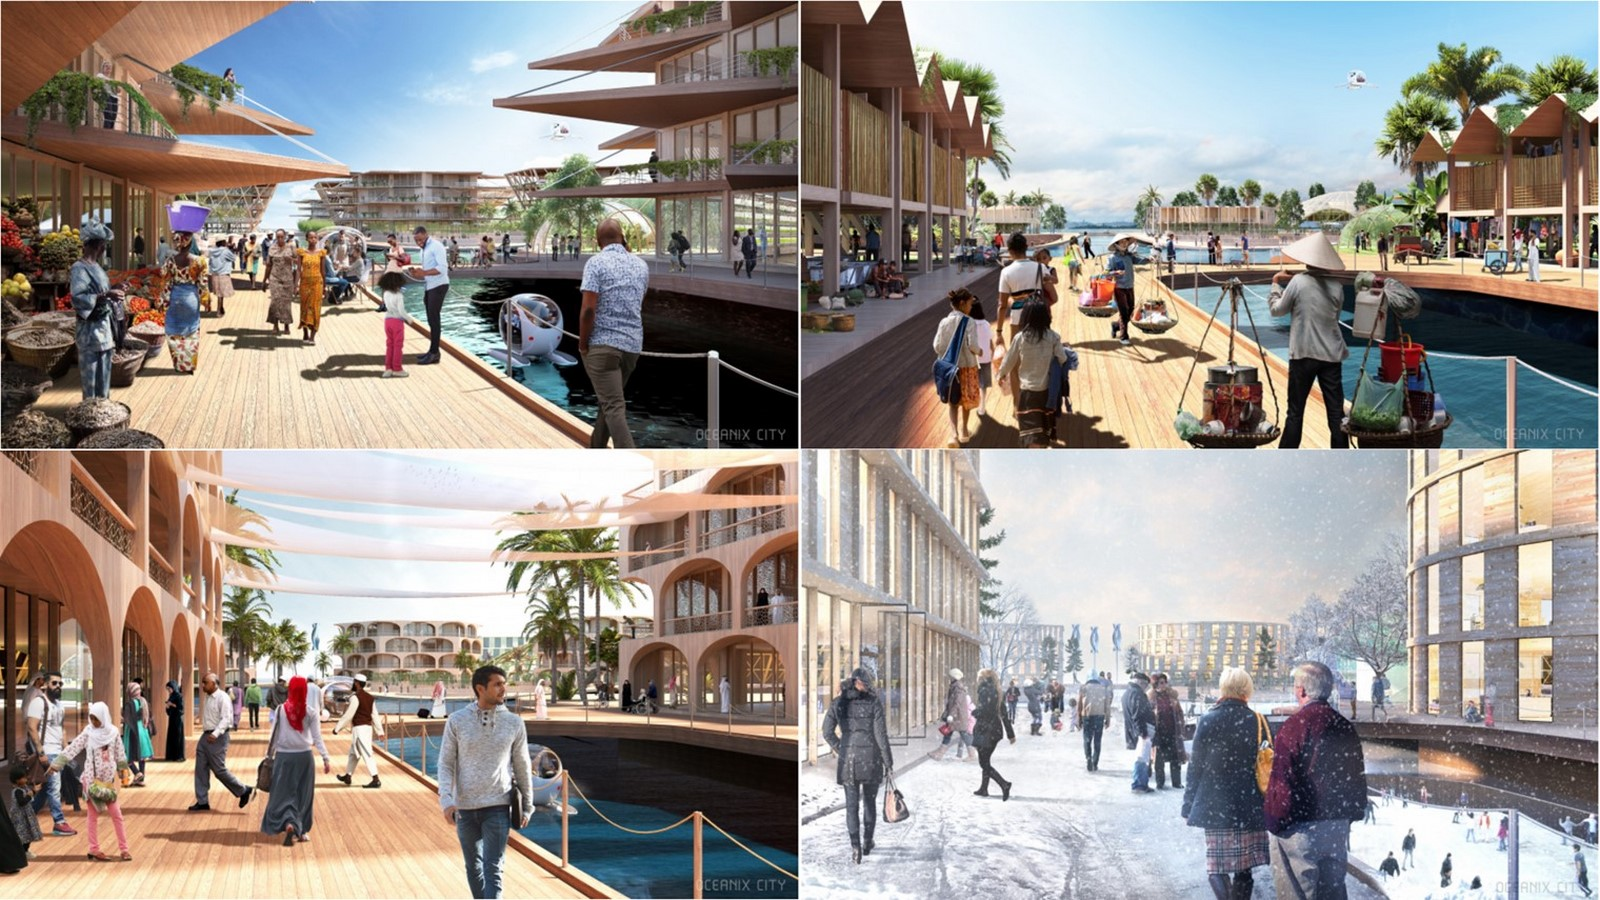 Why 'Oceanix City' by Bjarke Ingels can be considered as a milestone of futuristic architecture - Sheet7